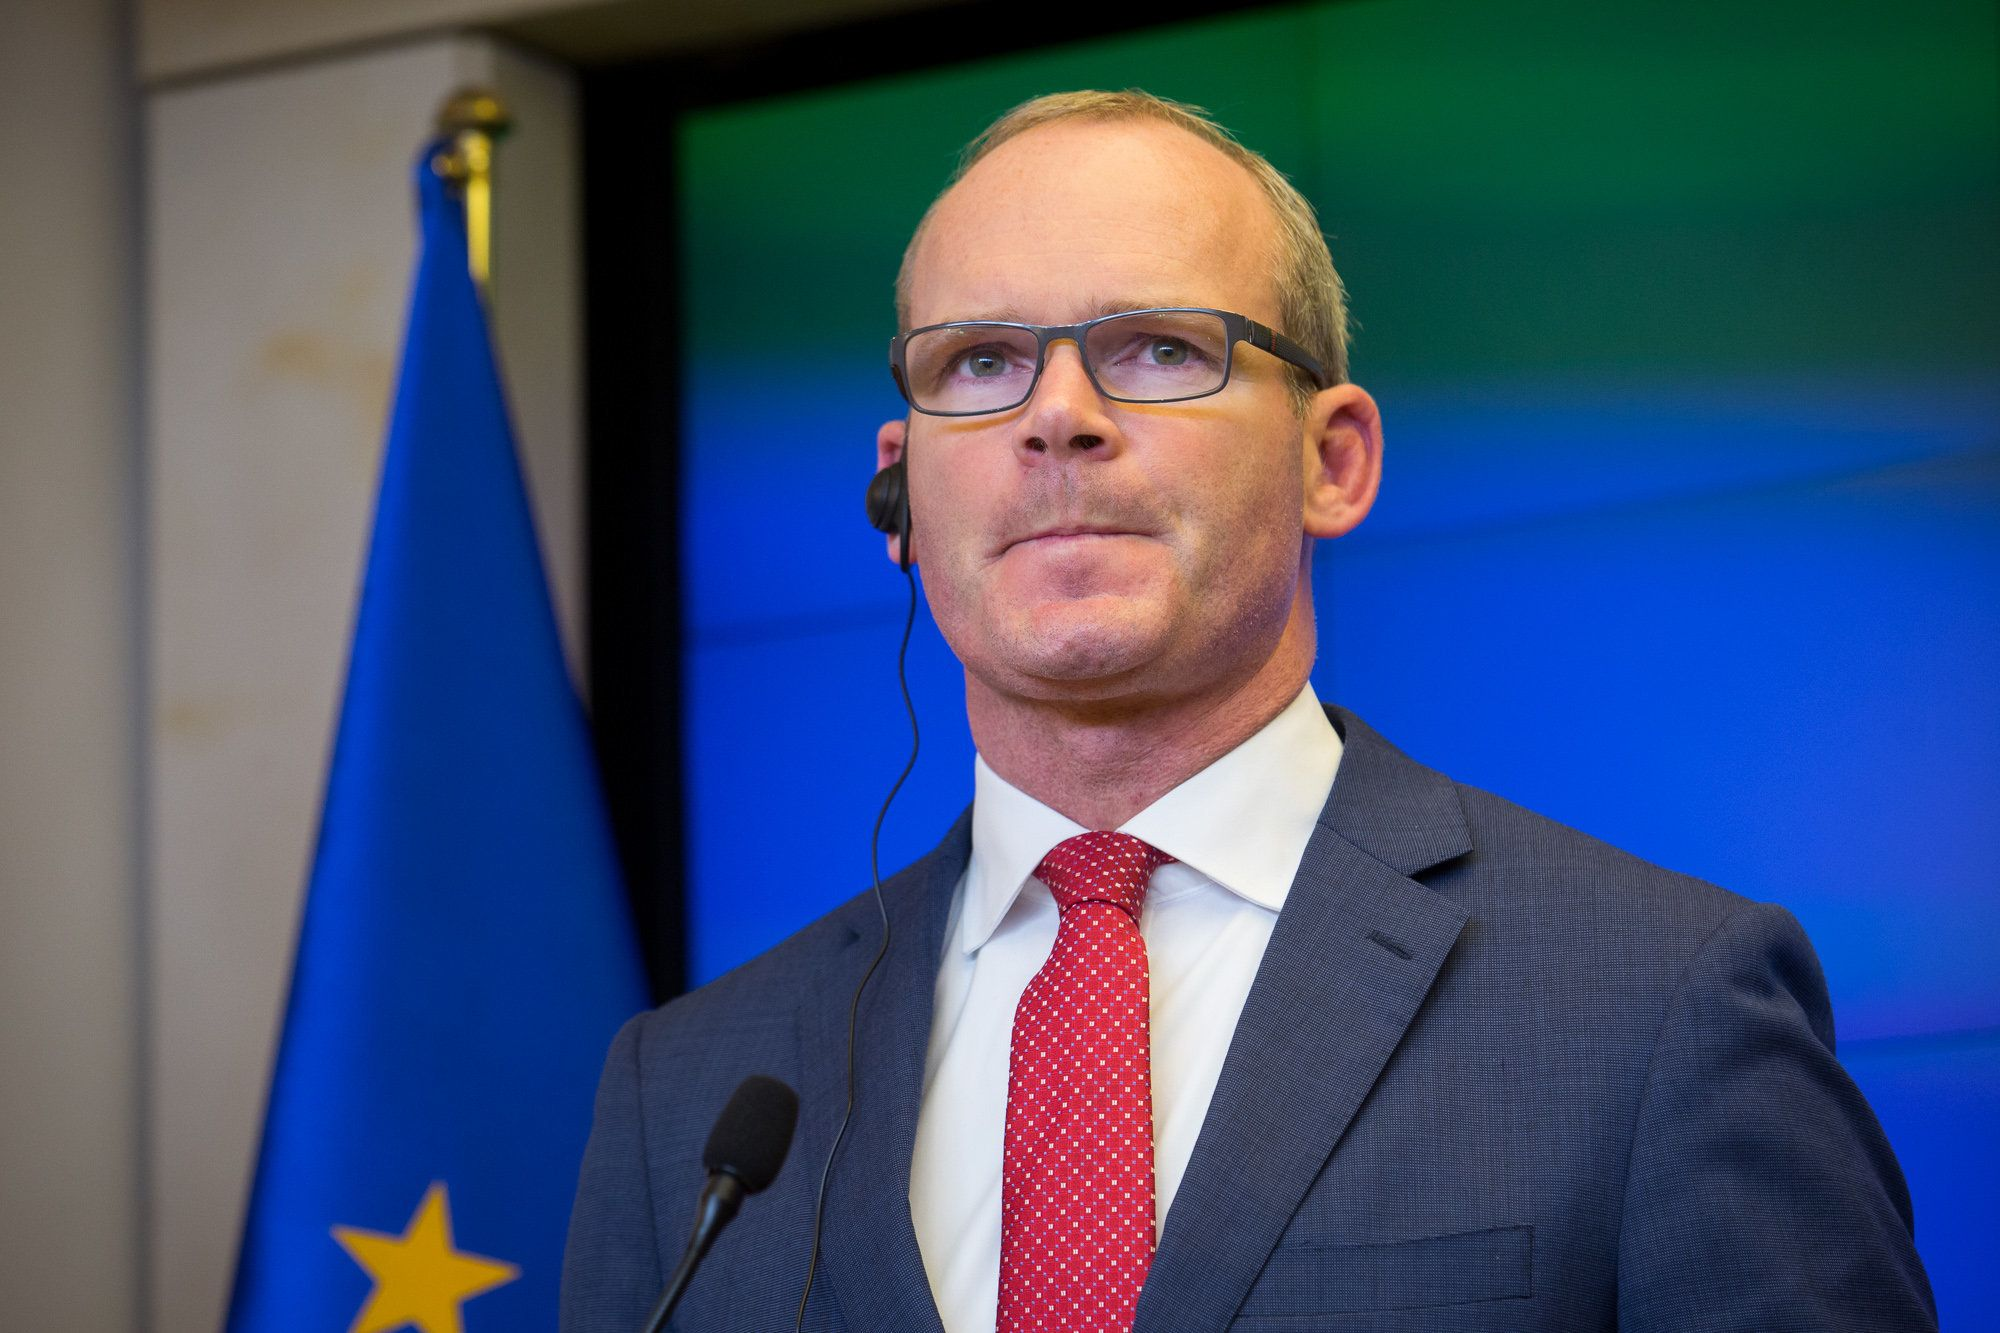 Simon Coveney Calls For Intensive Talks As Brexit Deal Hopes